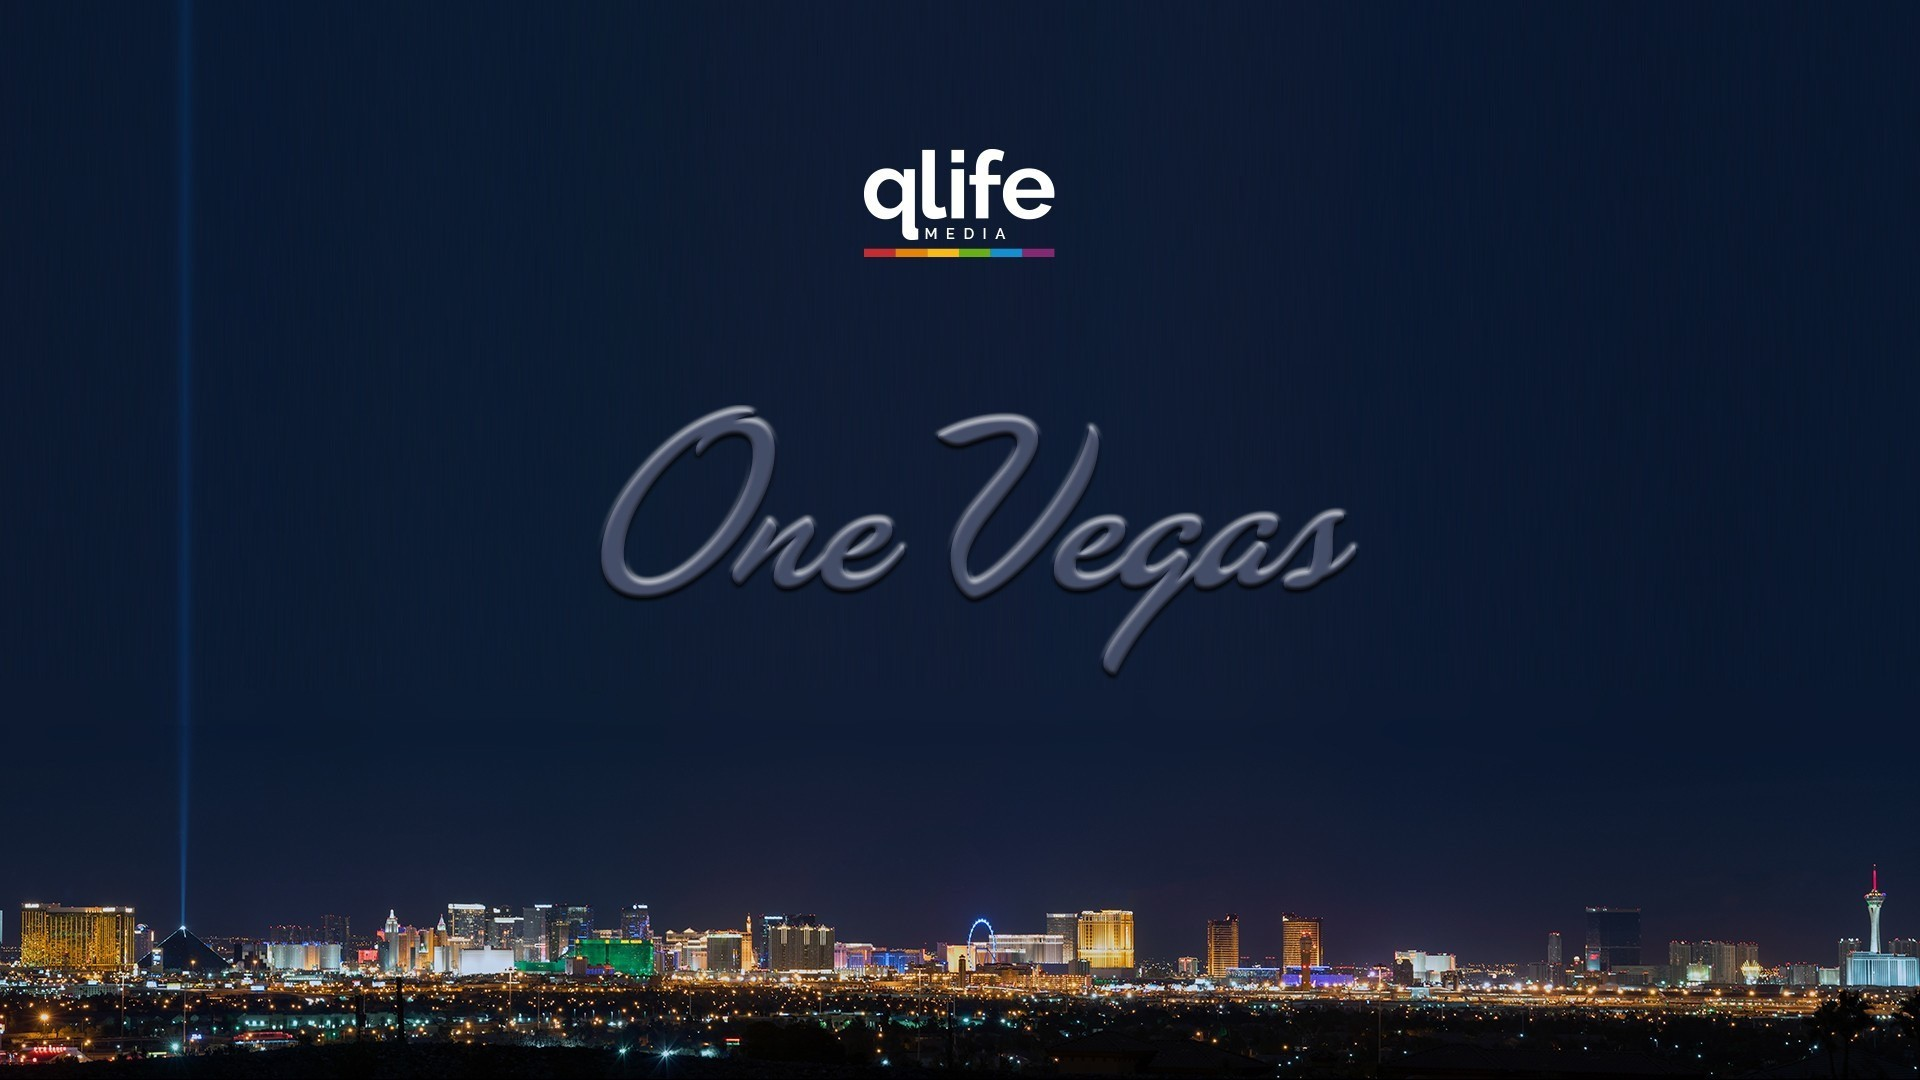 One Vegas